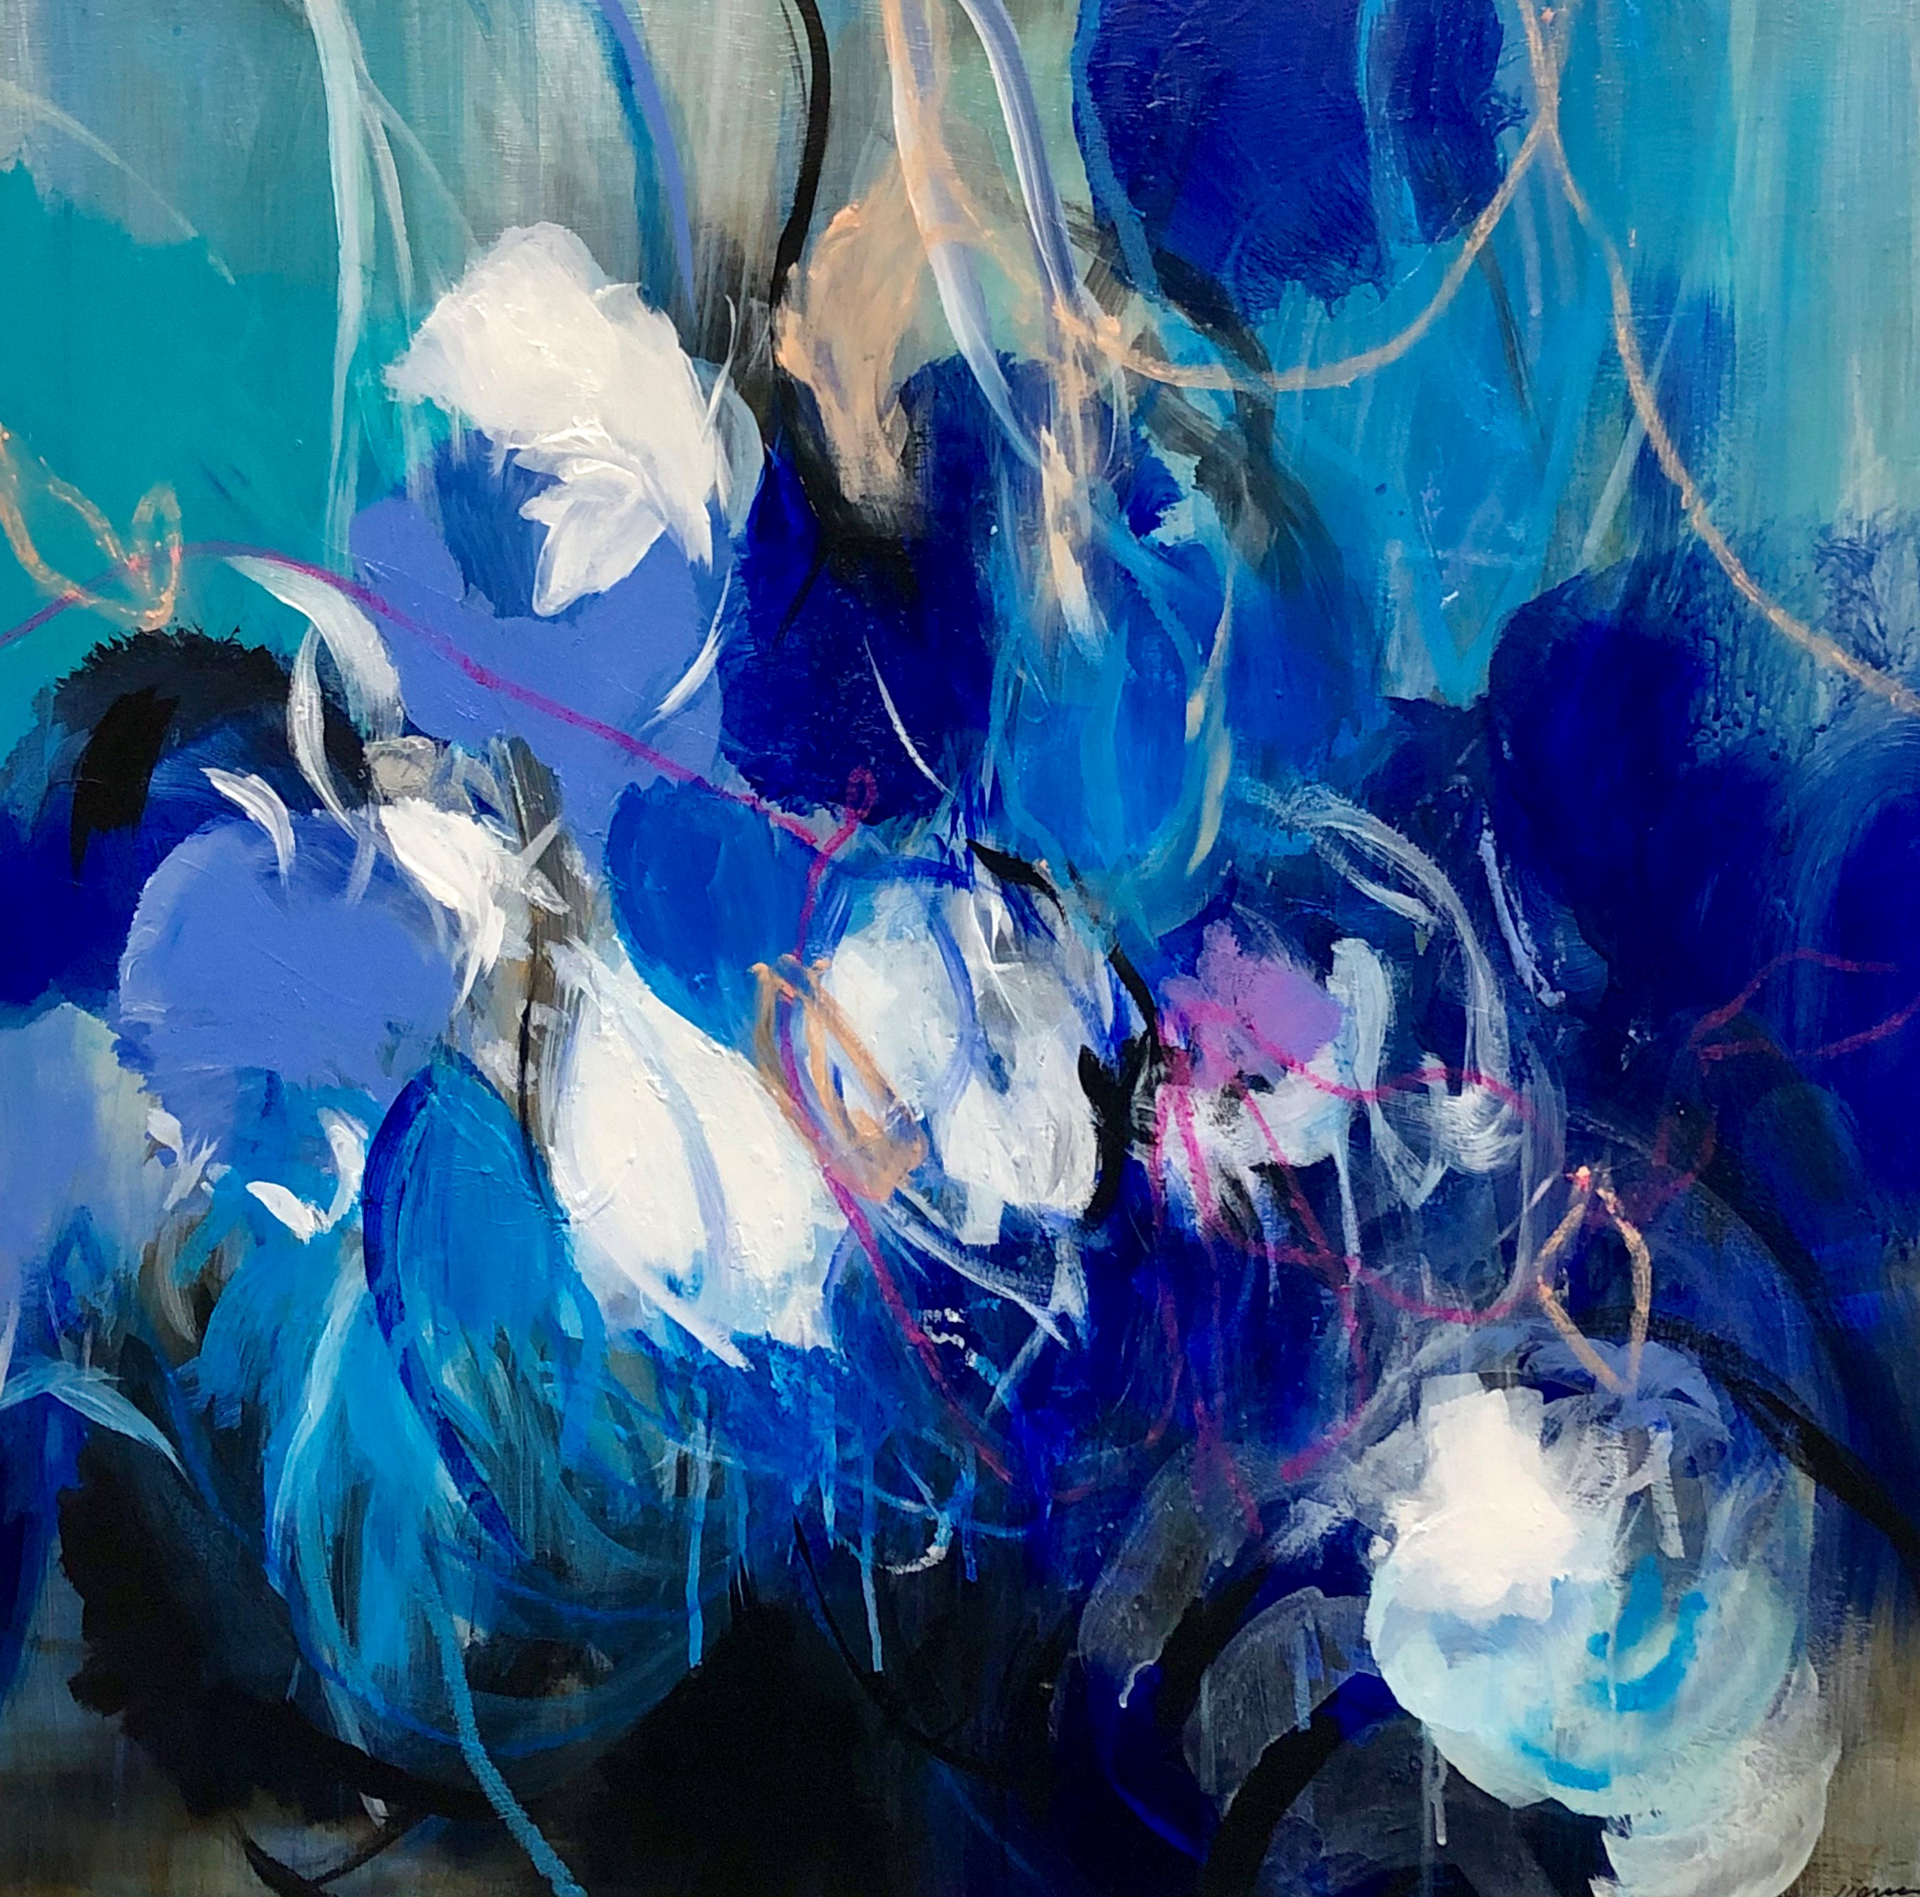 Indigo I by Jennifer JL Jones (b. 1971)